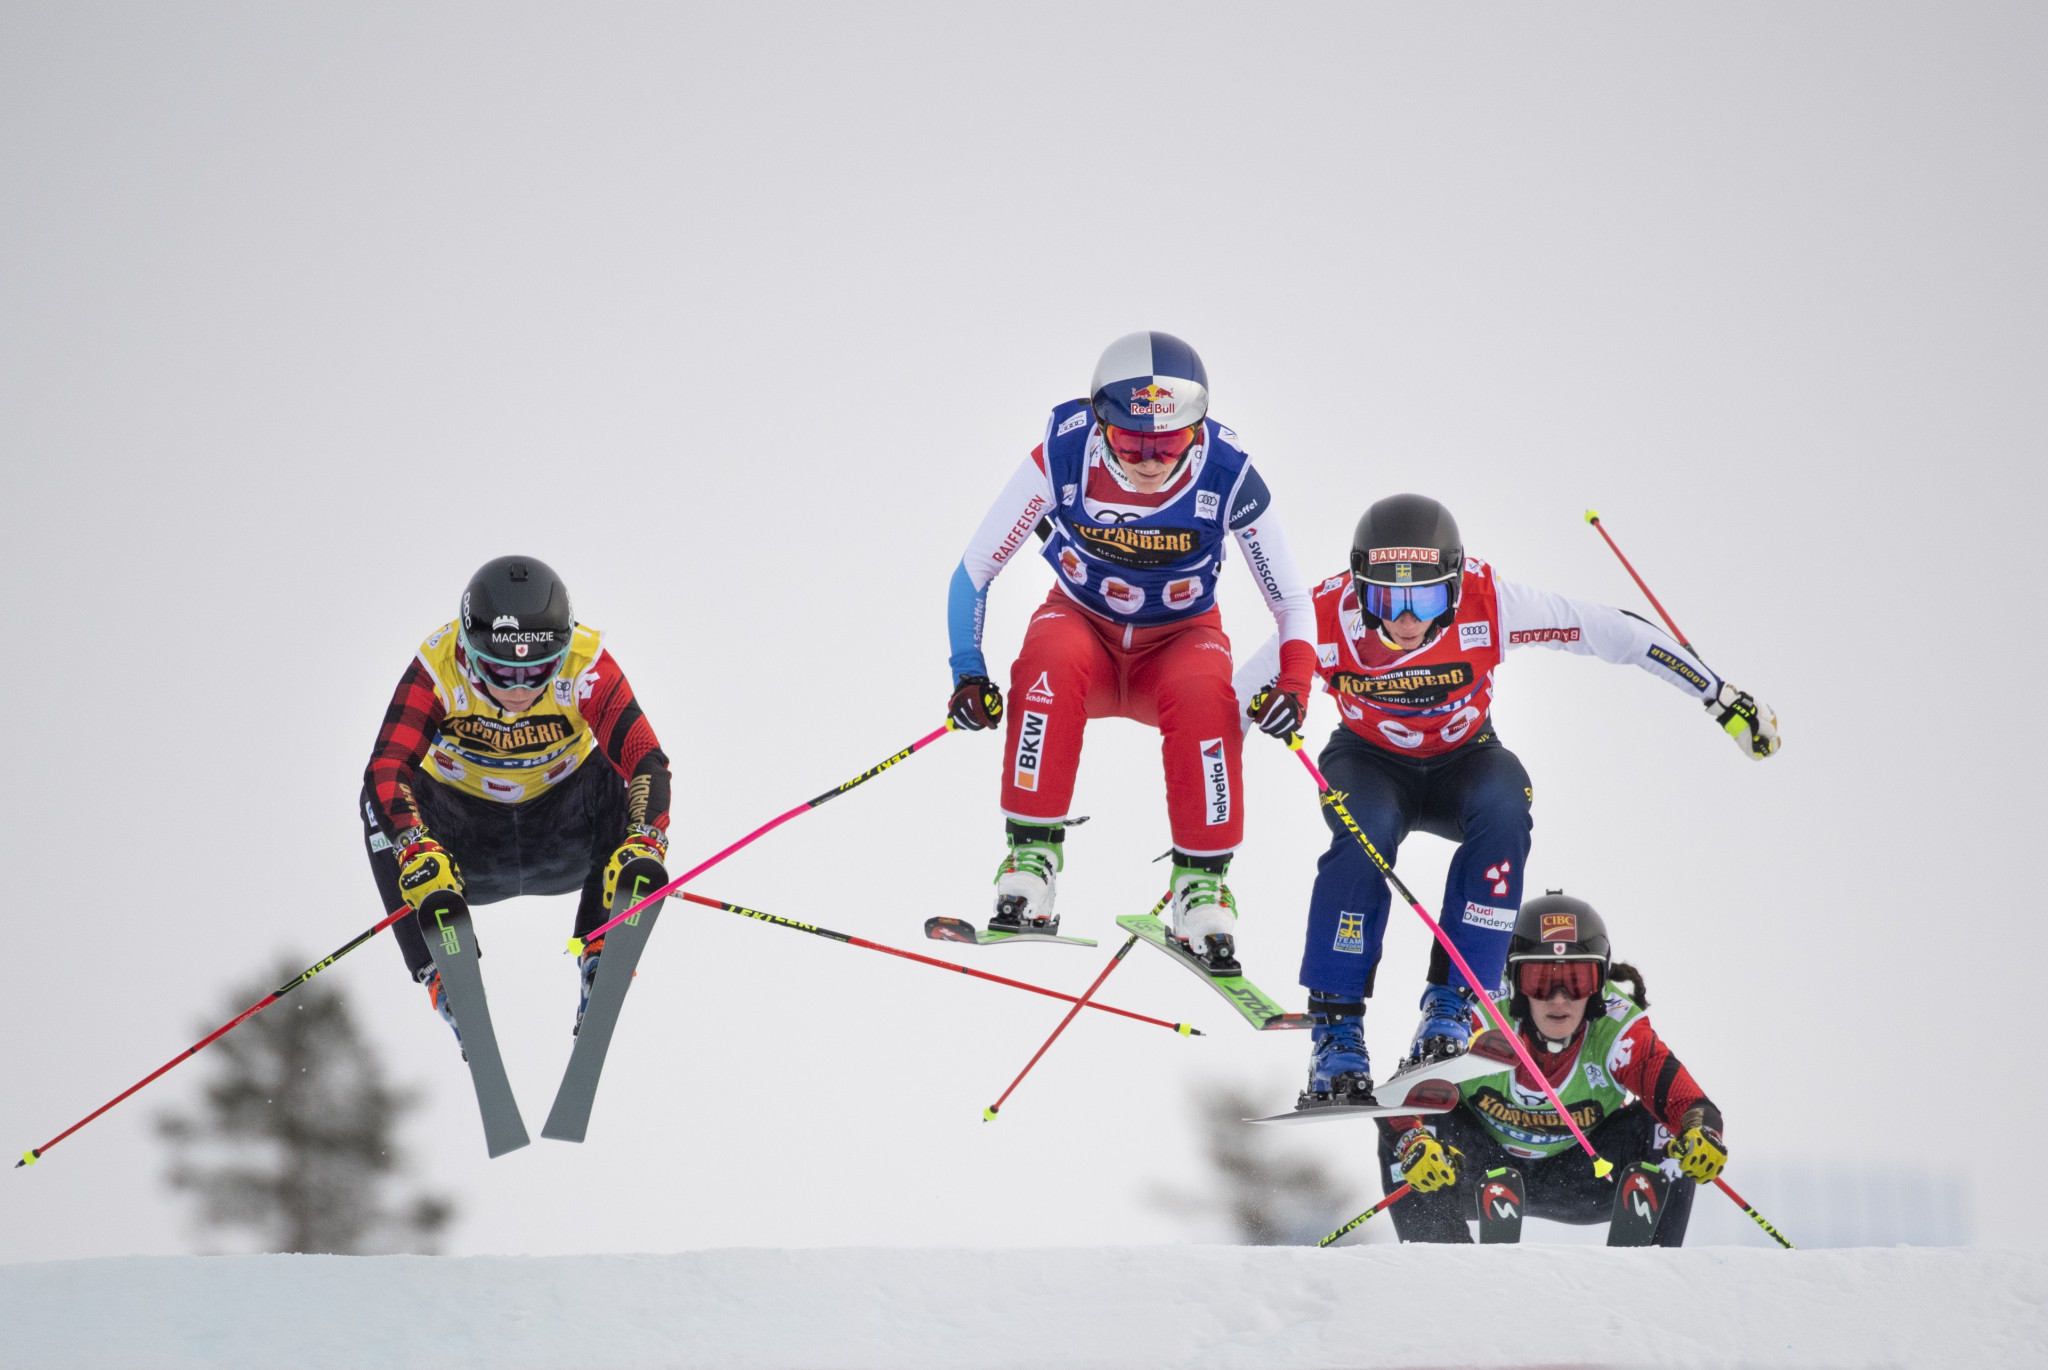 Swiss double as Smith wins in Idre on 100th Ski Cross World Cup start